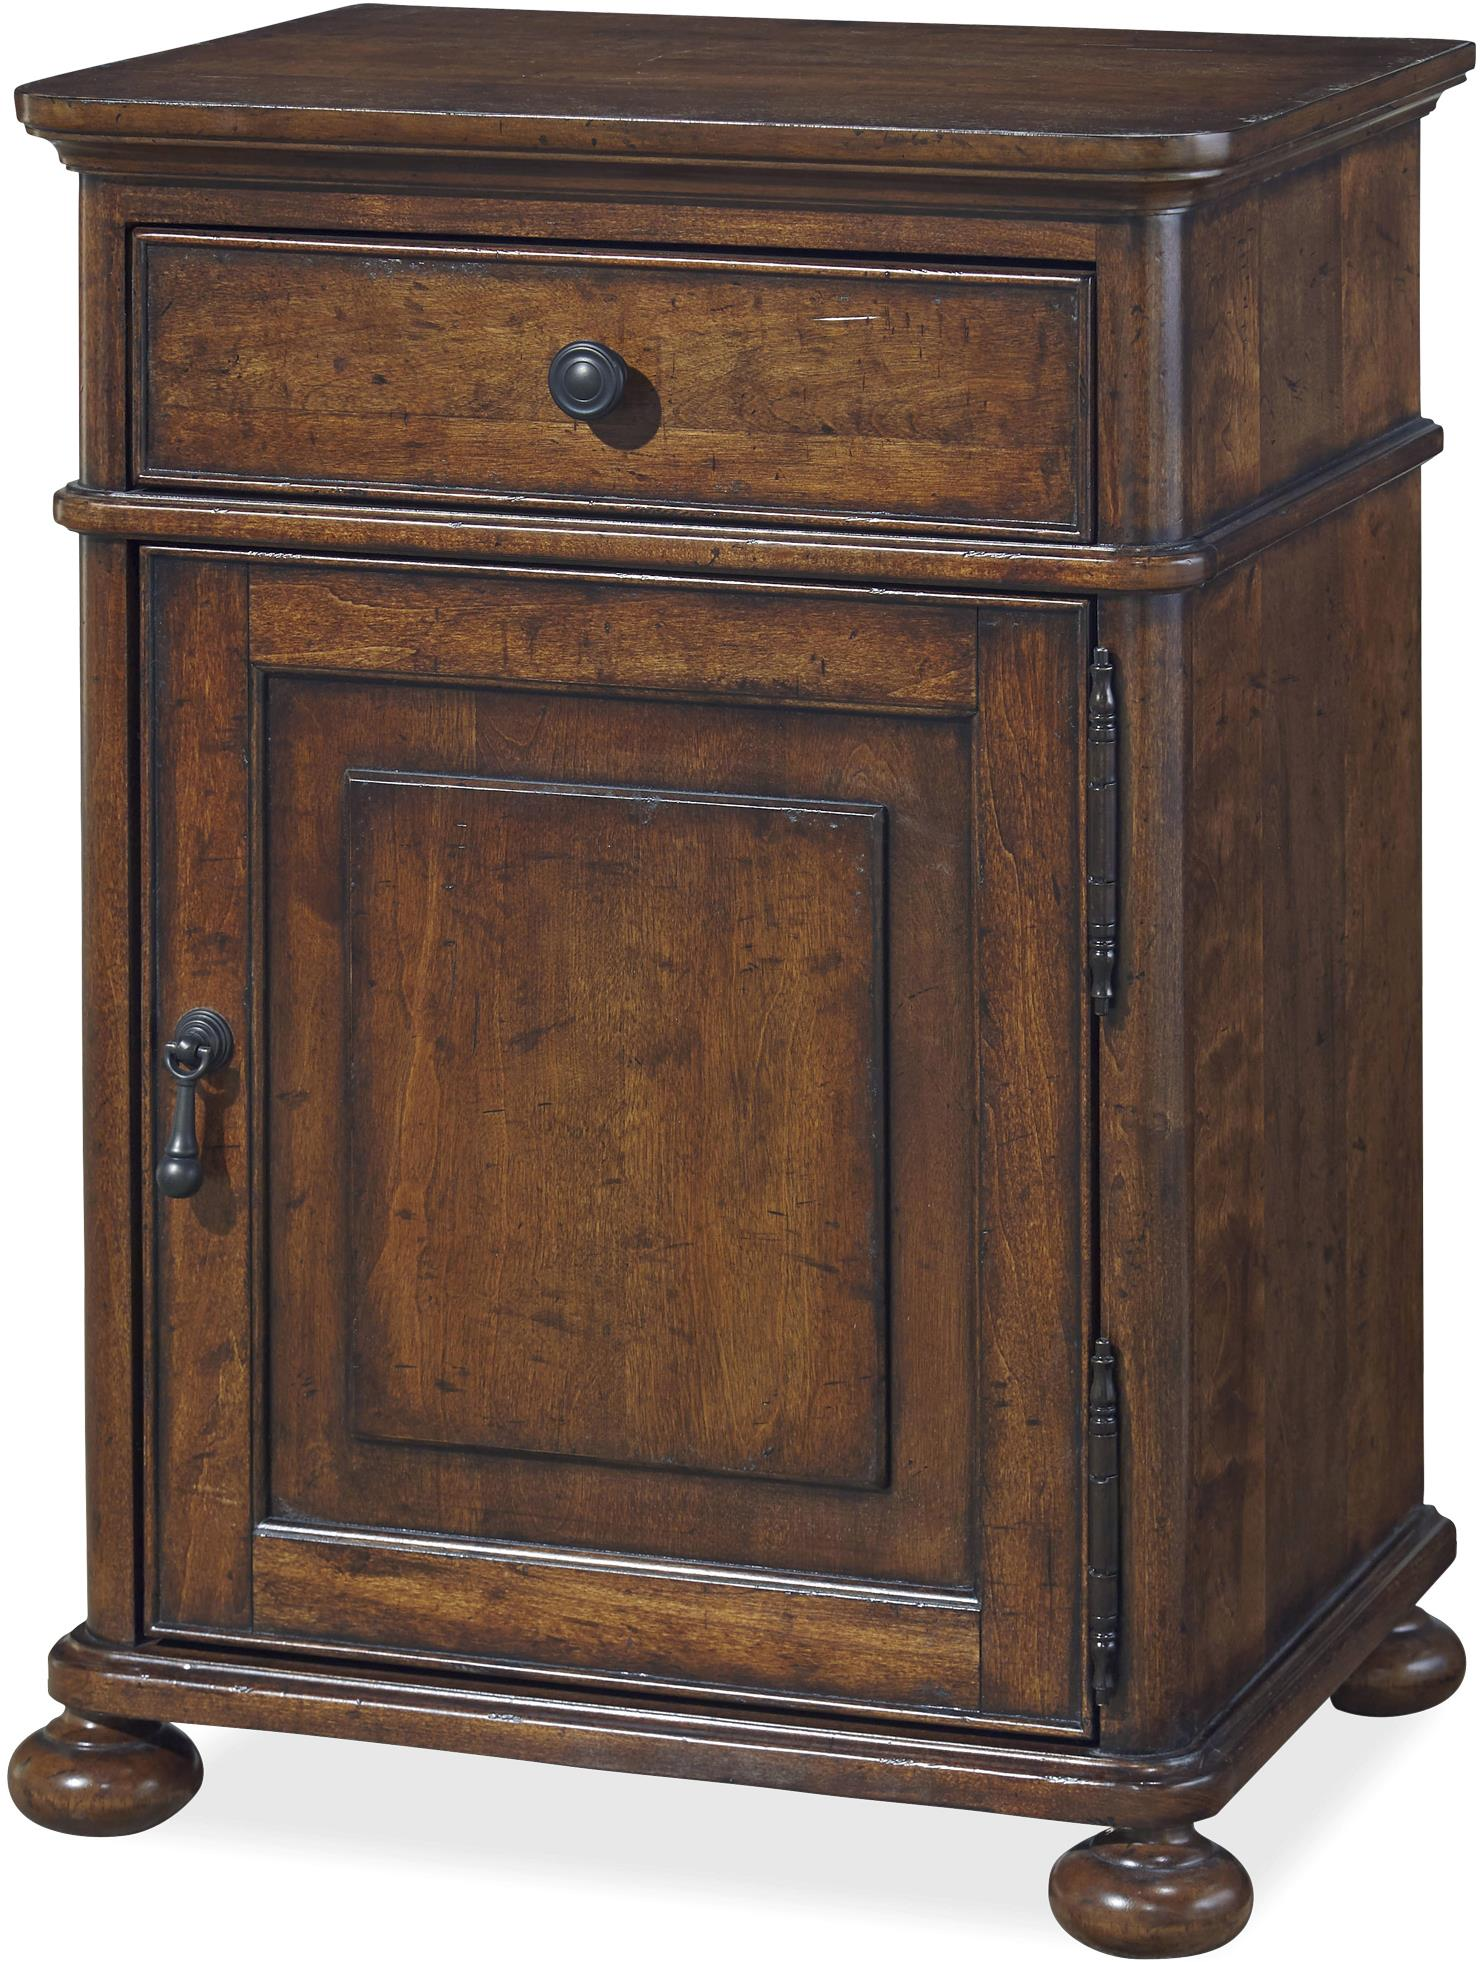 Paula Deen by Universal Dogwood Door Nightstand - Item Number: 596365